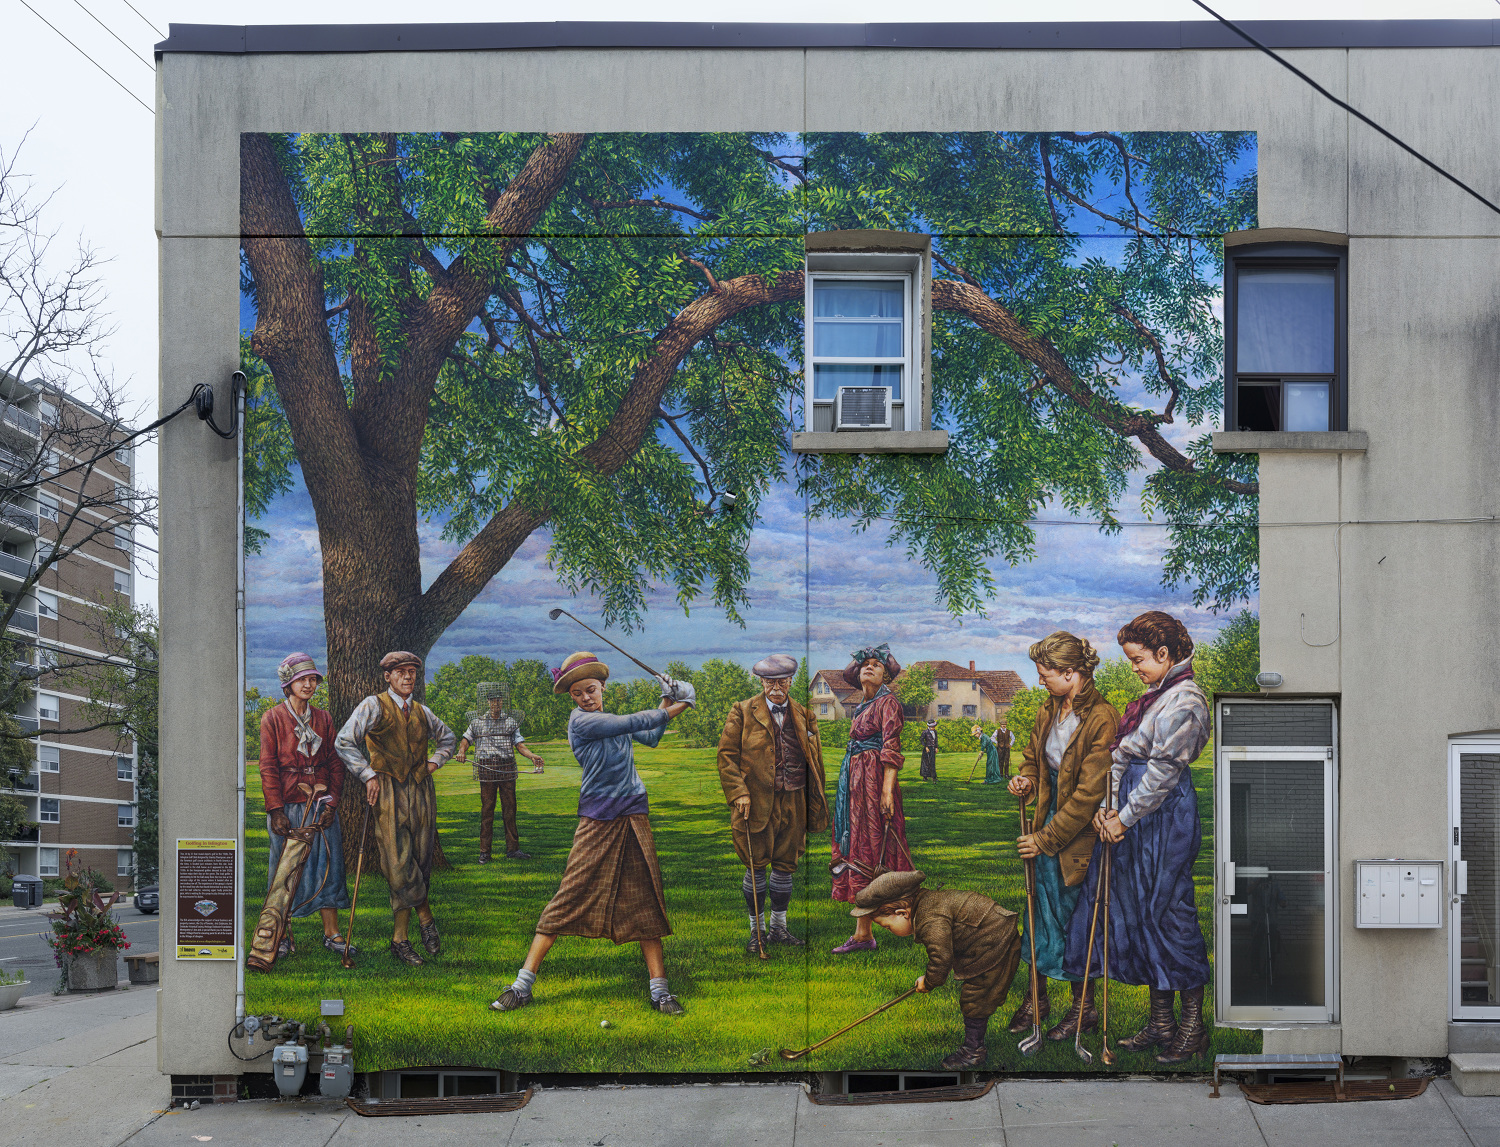 Public works john kuna murals commissioned by the historic village of islington bia in partnership with heritage etobicoke and the city of toronto toronto ontario amipublicfo Image collections